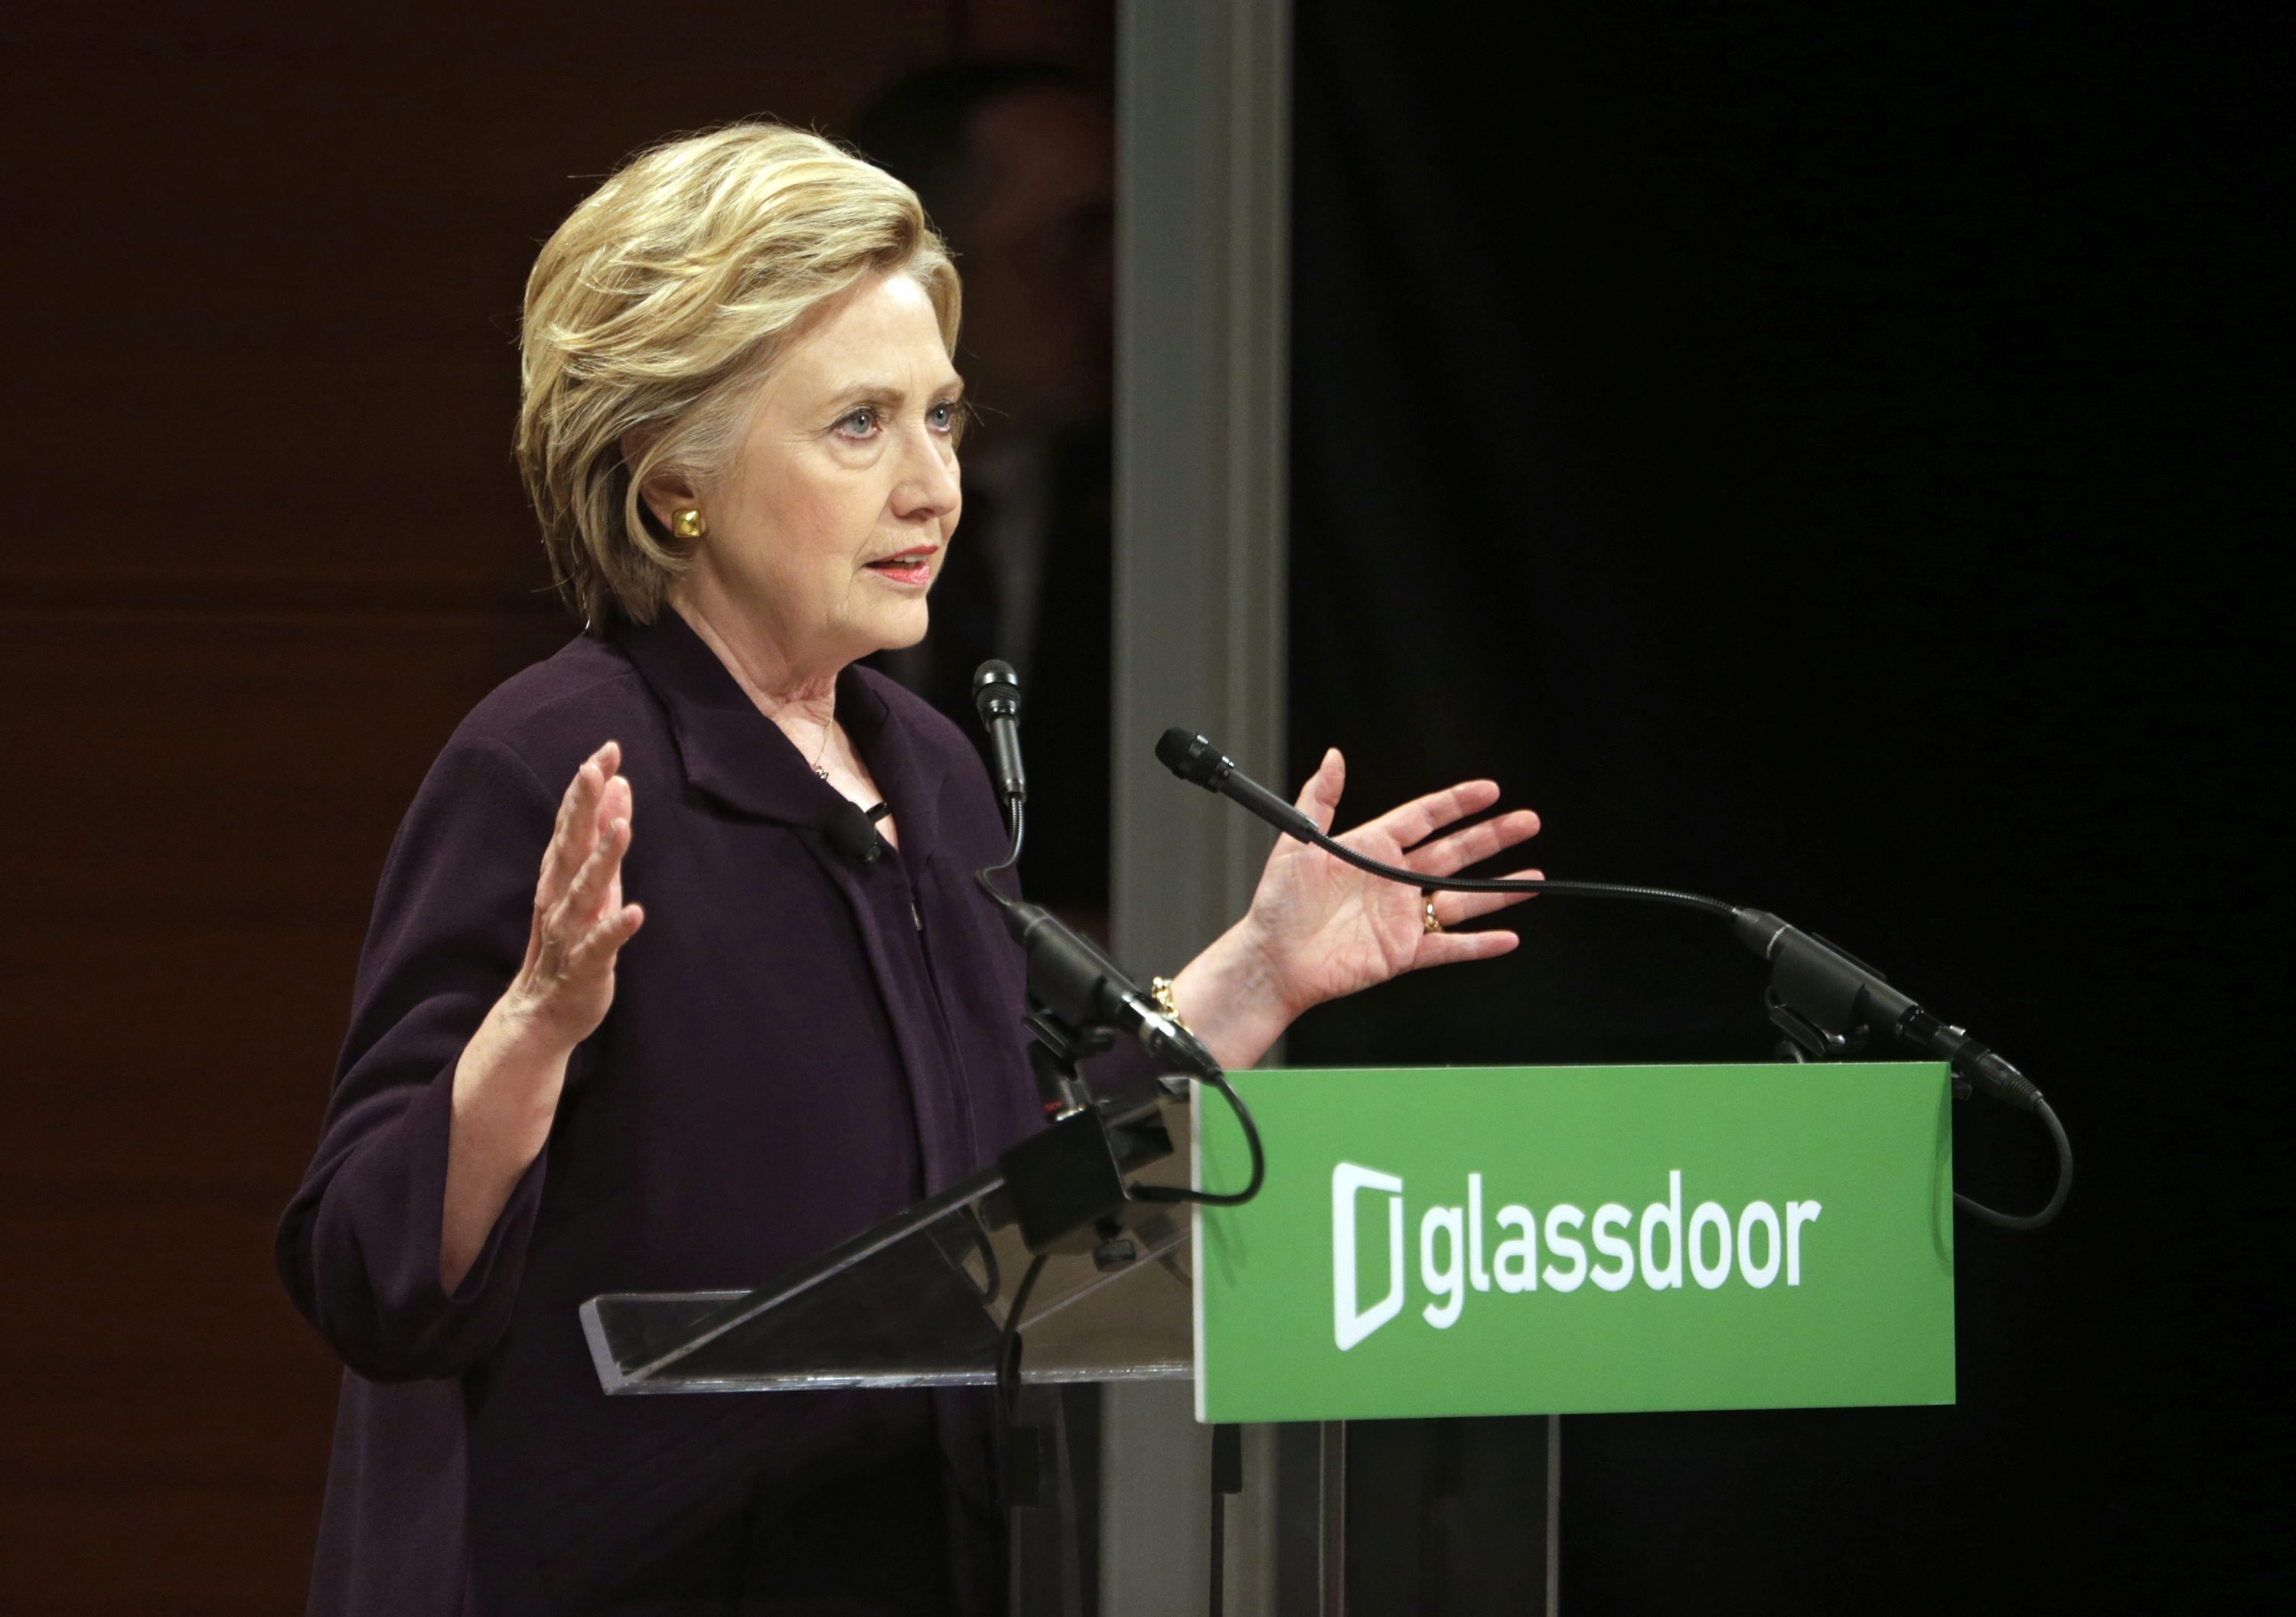 Hillary Clinton addresses an audience  during a Glassdoor roundtable discussion in New York City, on April 12, 2016.